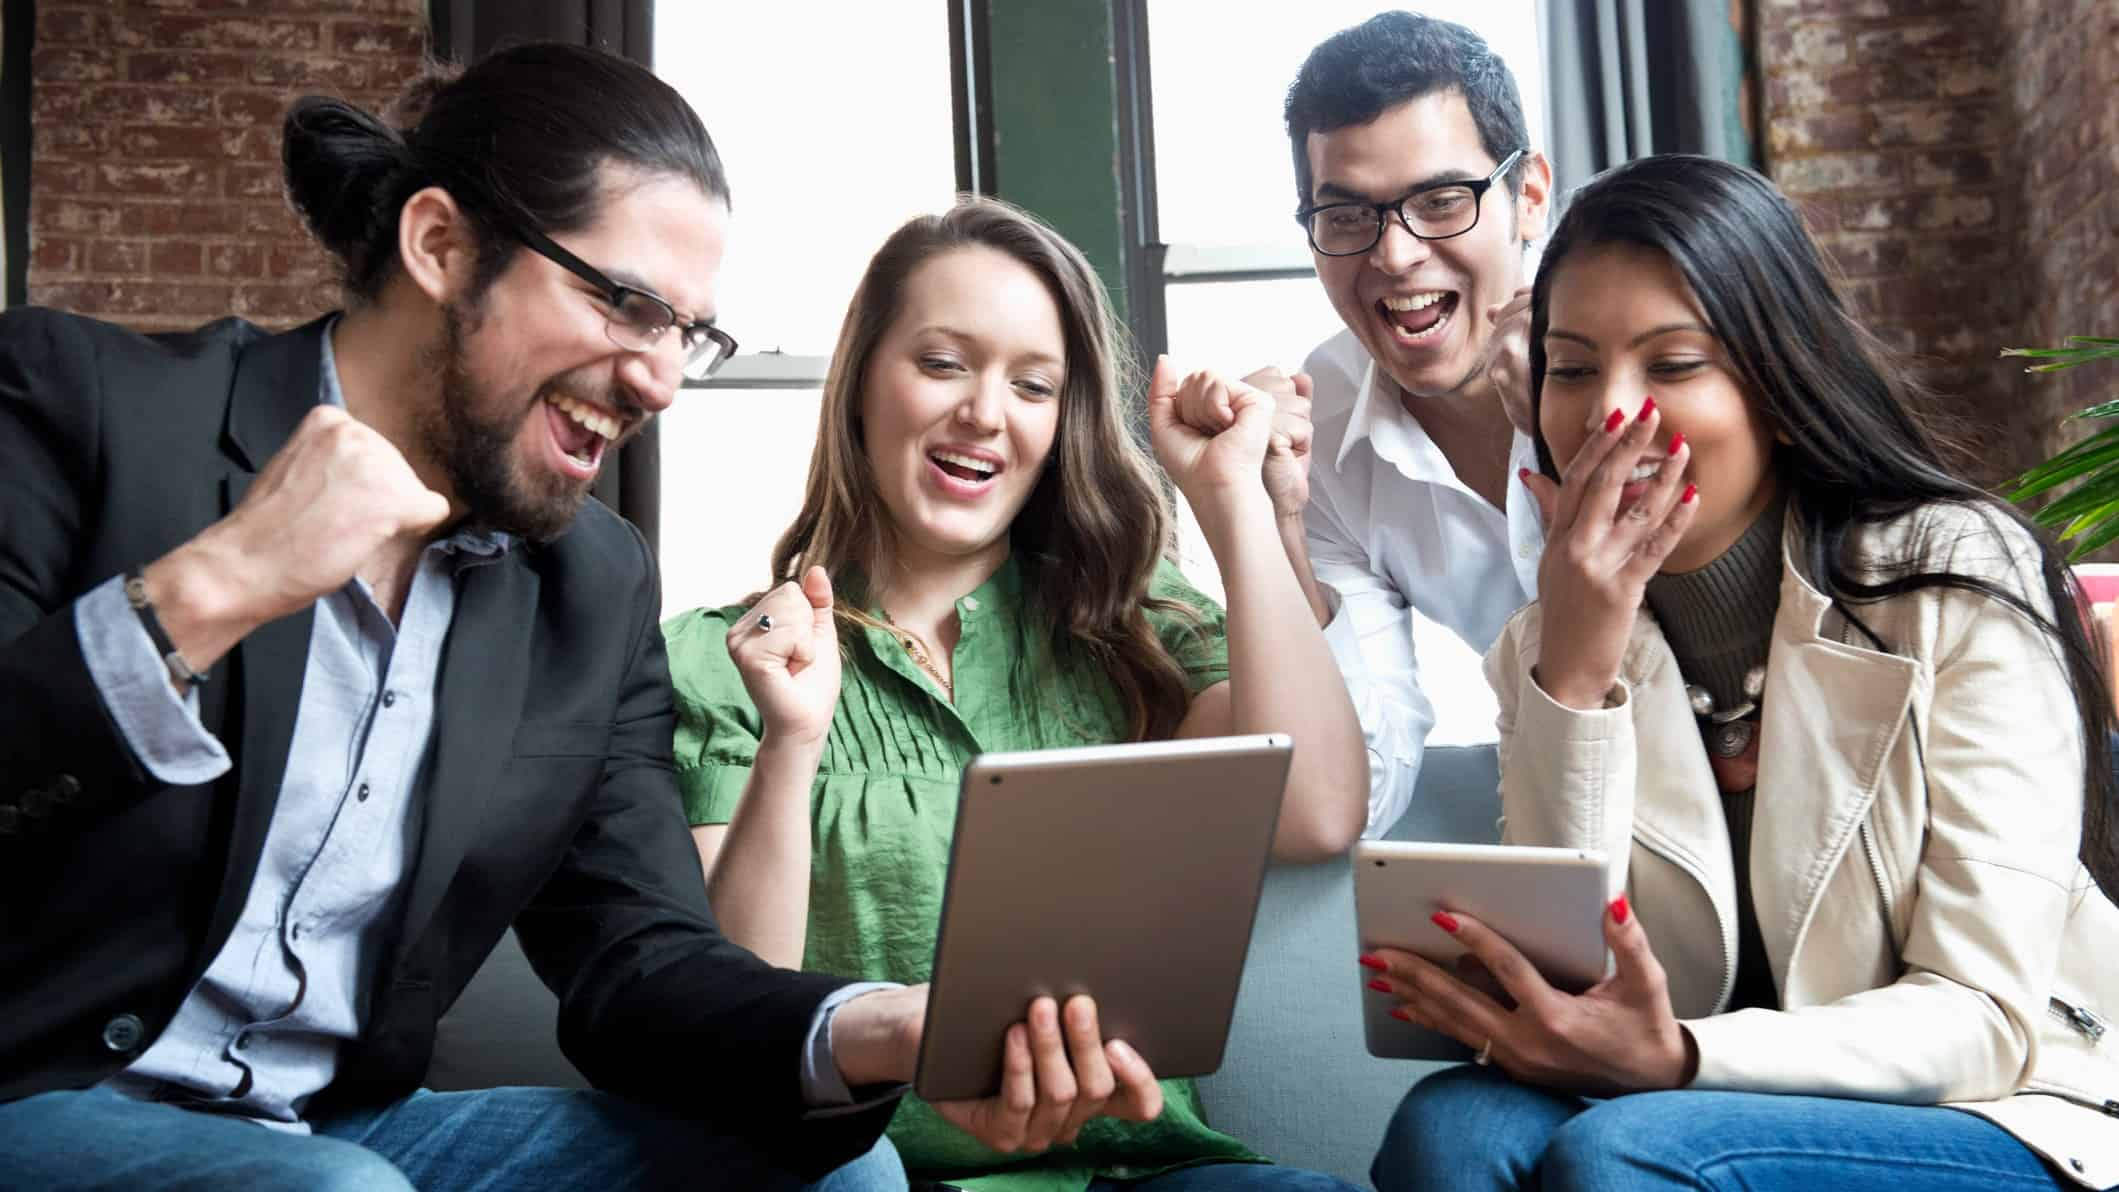 Group of people cheer around tablets in office